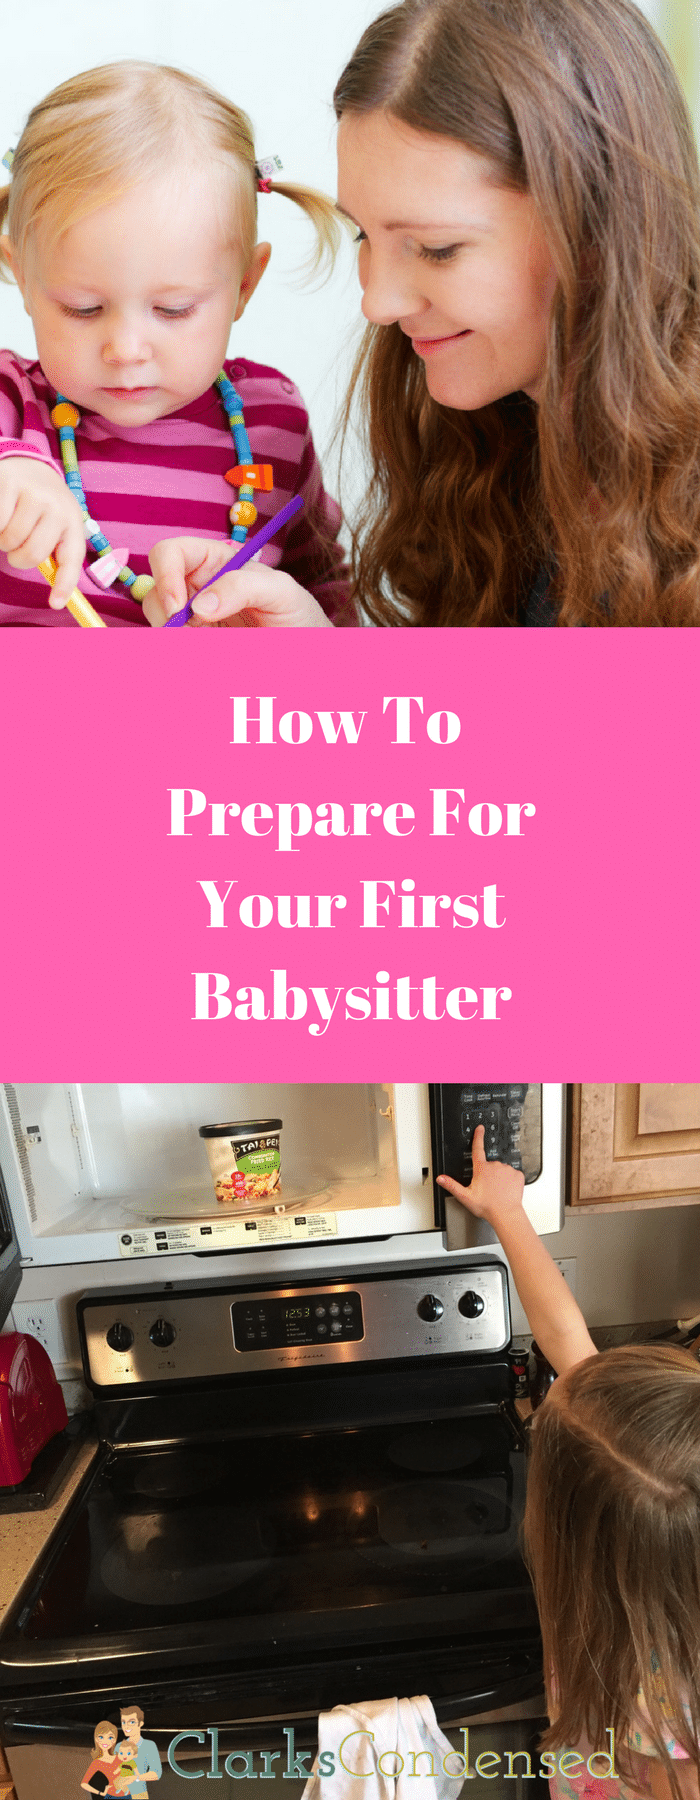 How To Prepare For Your First Babysitter via @clarkscondensed